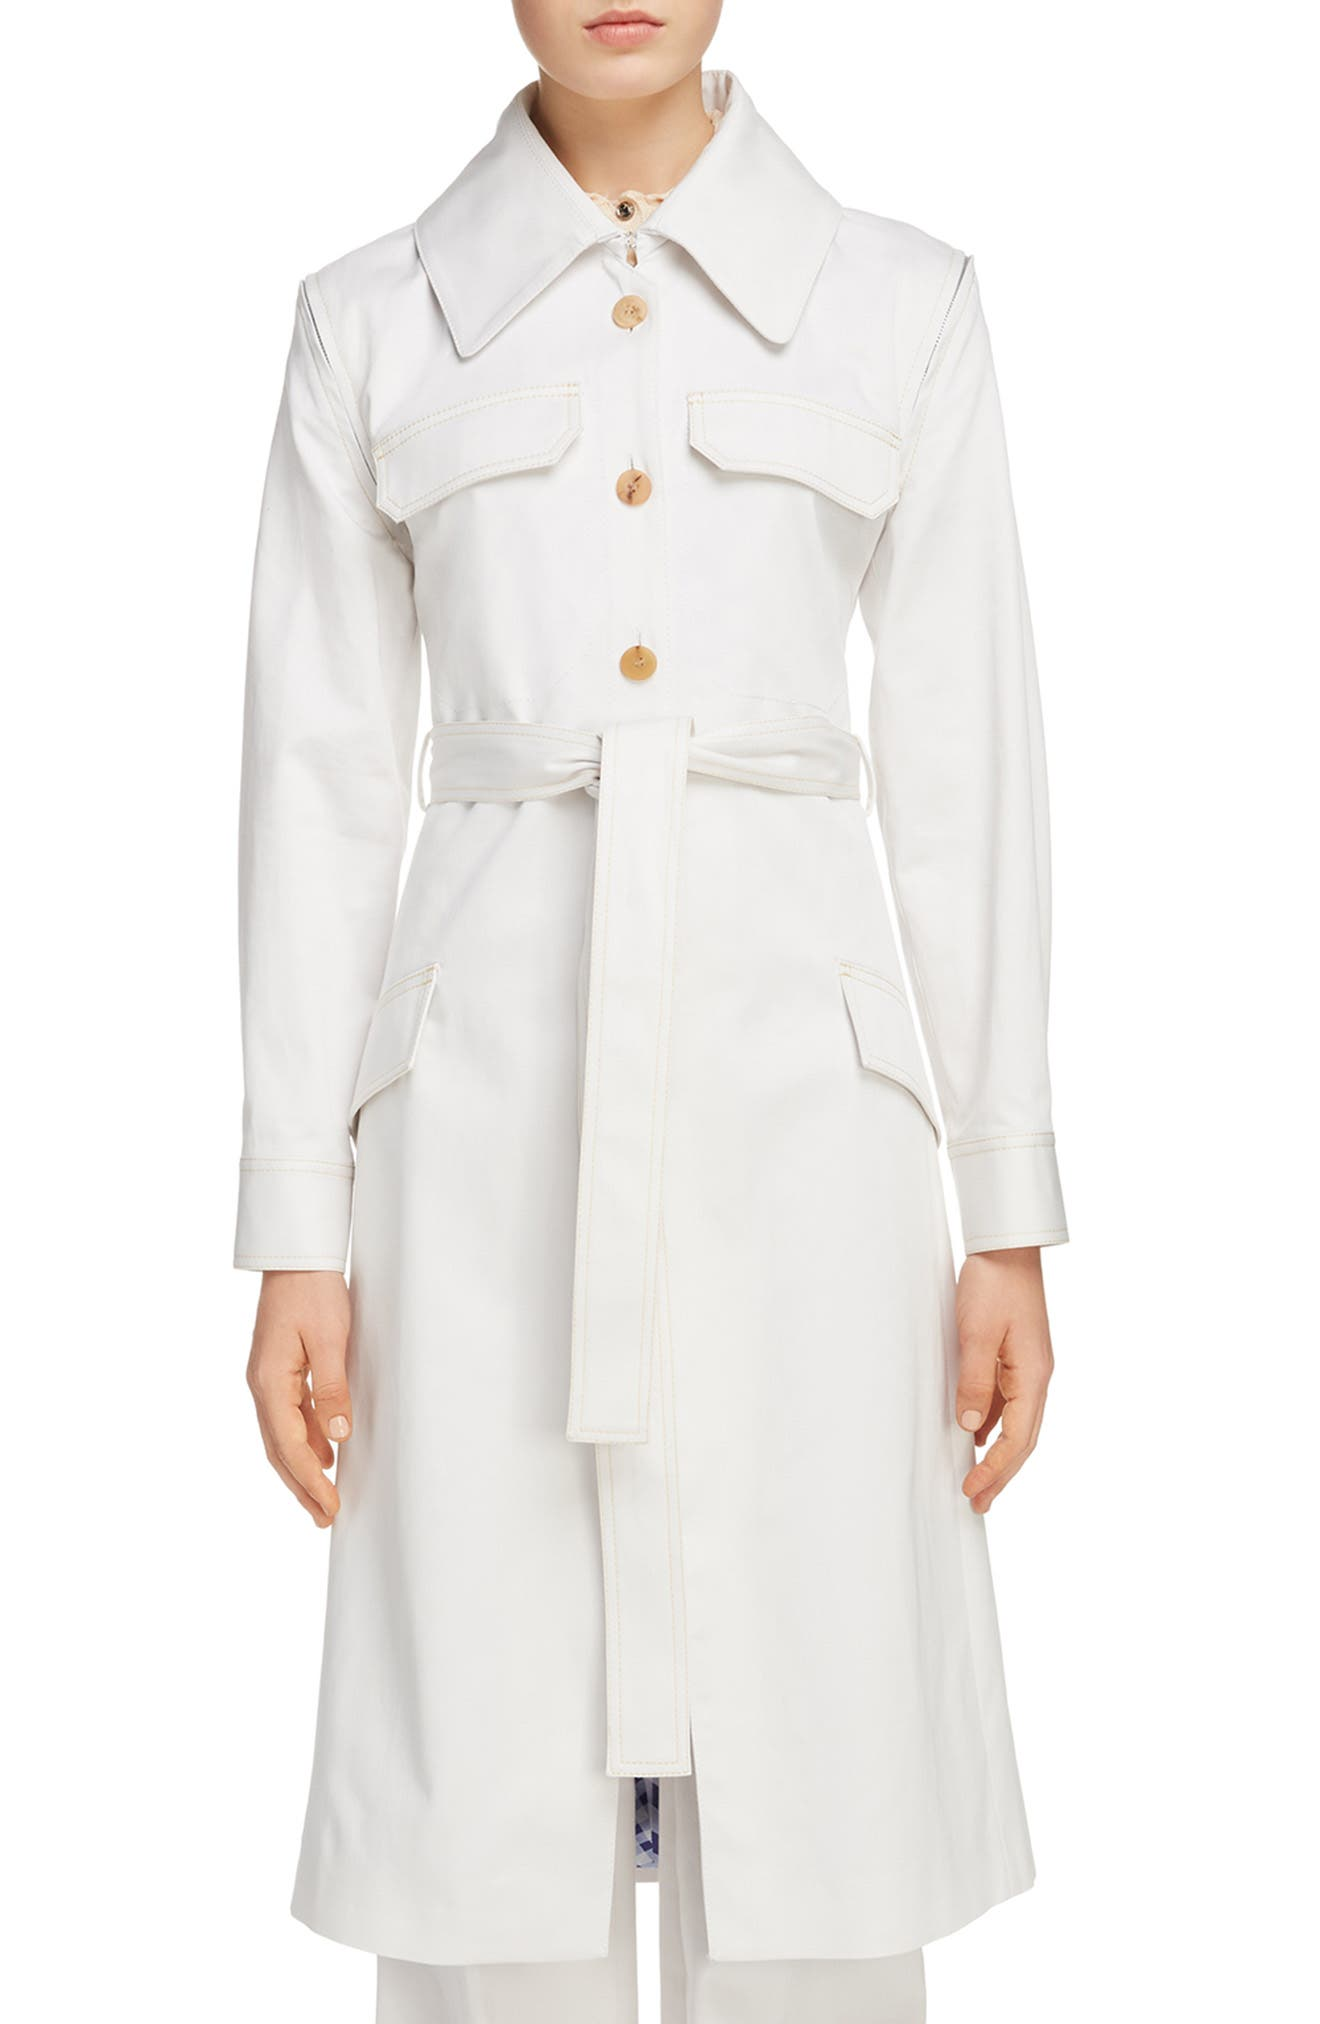 Olesia Removable Sleeve Belted Coat,                             Main thumbnail 1, color,                             Dirty White